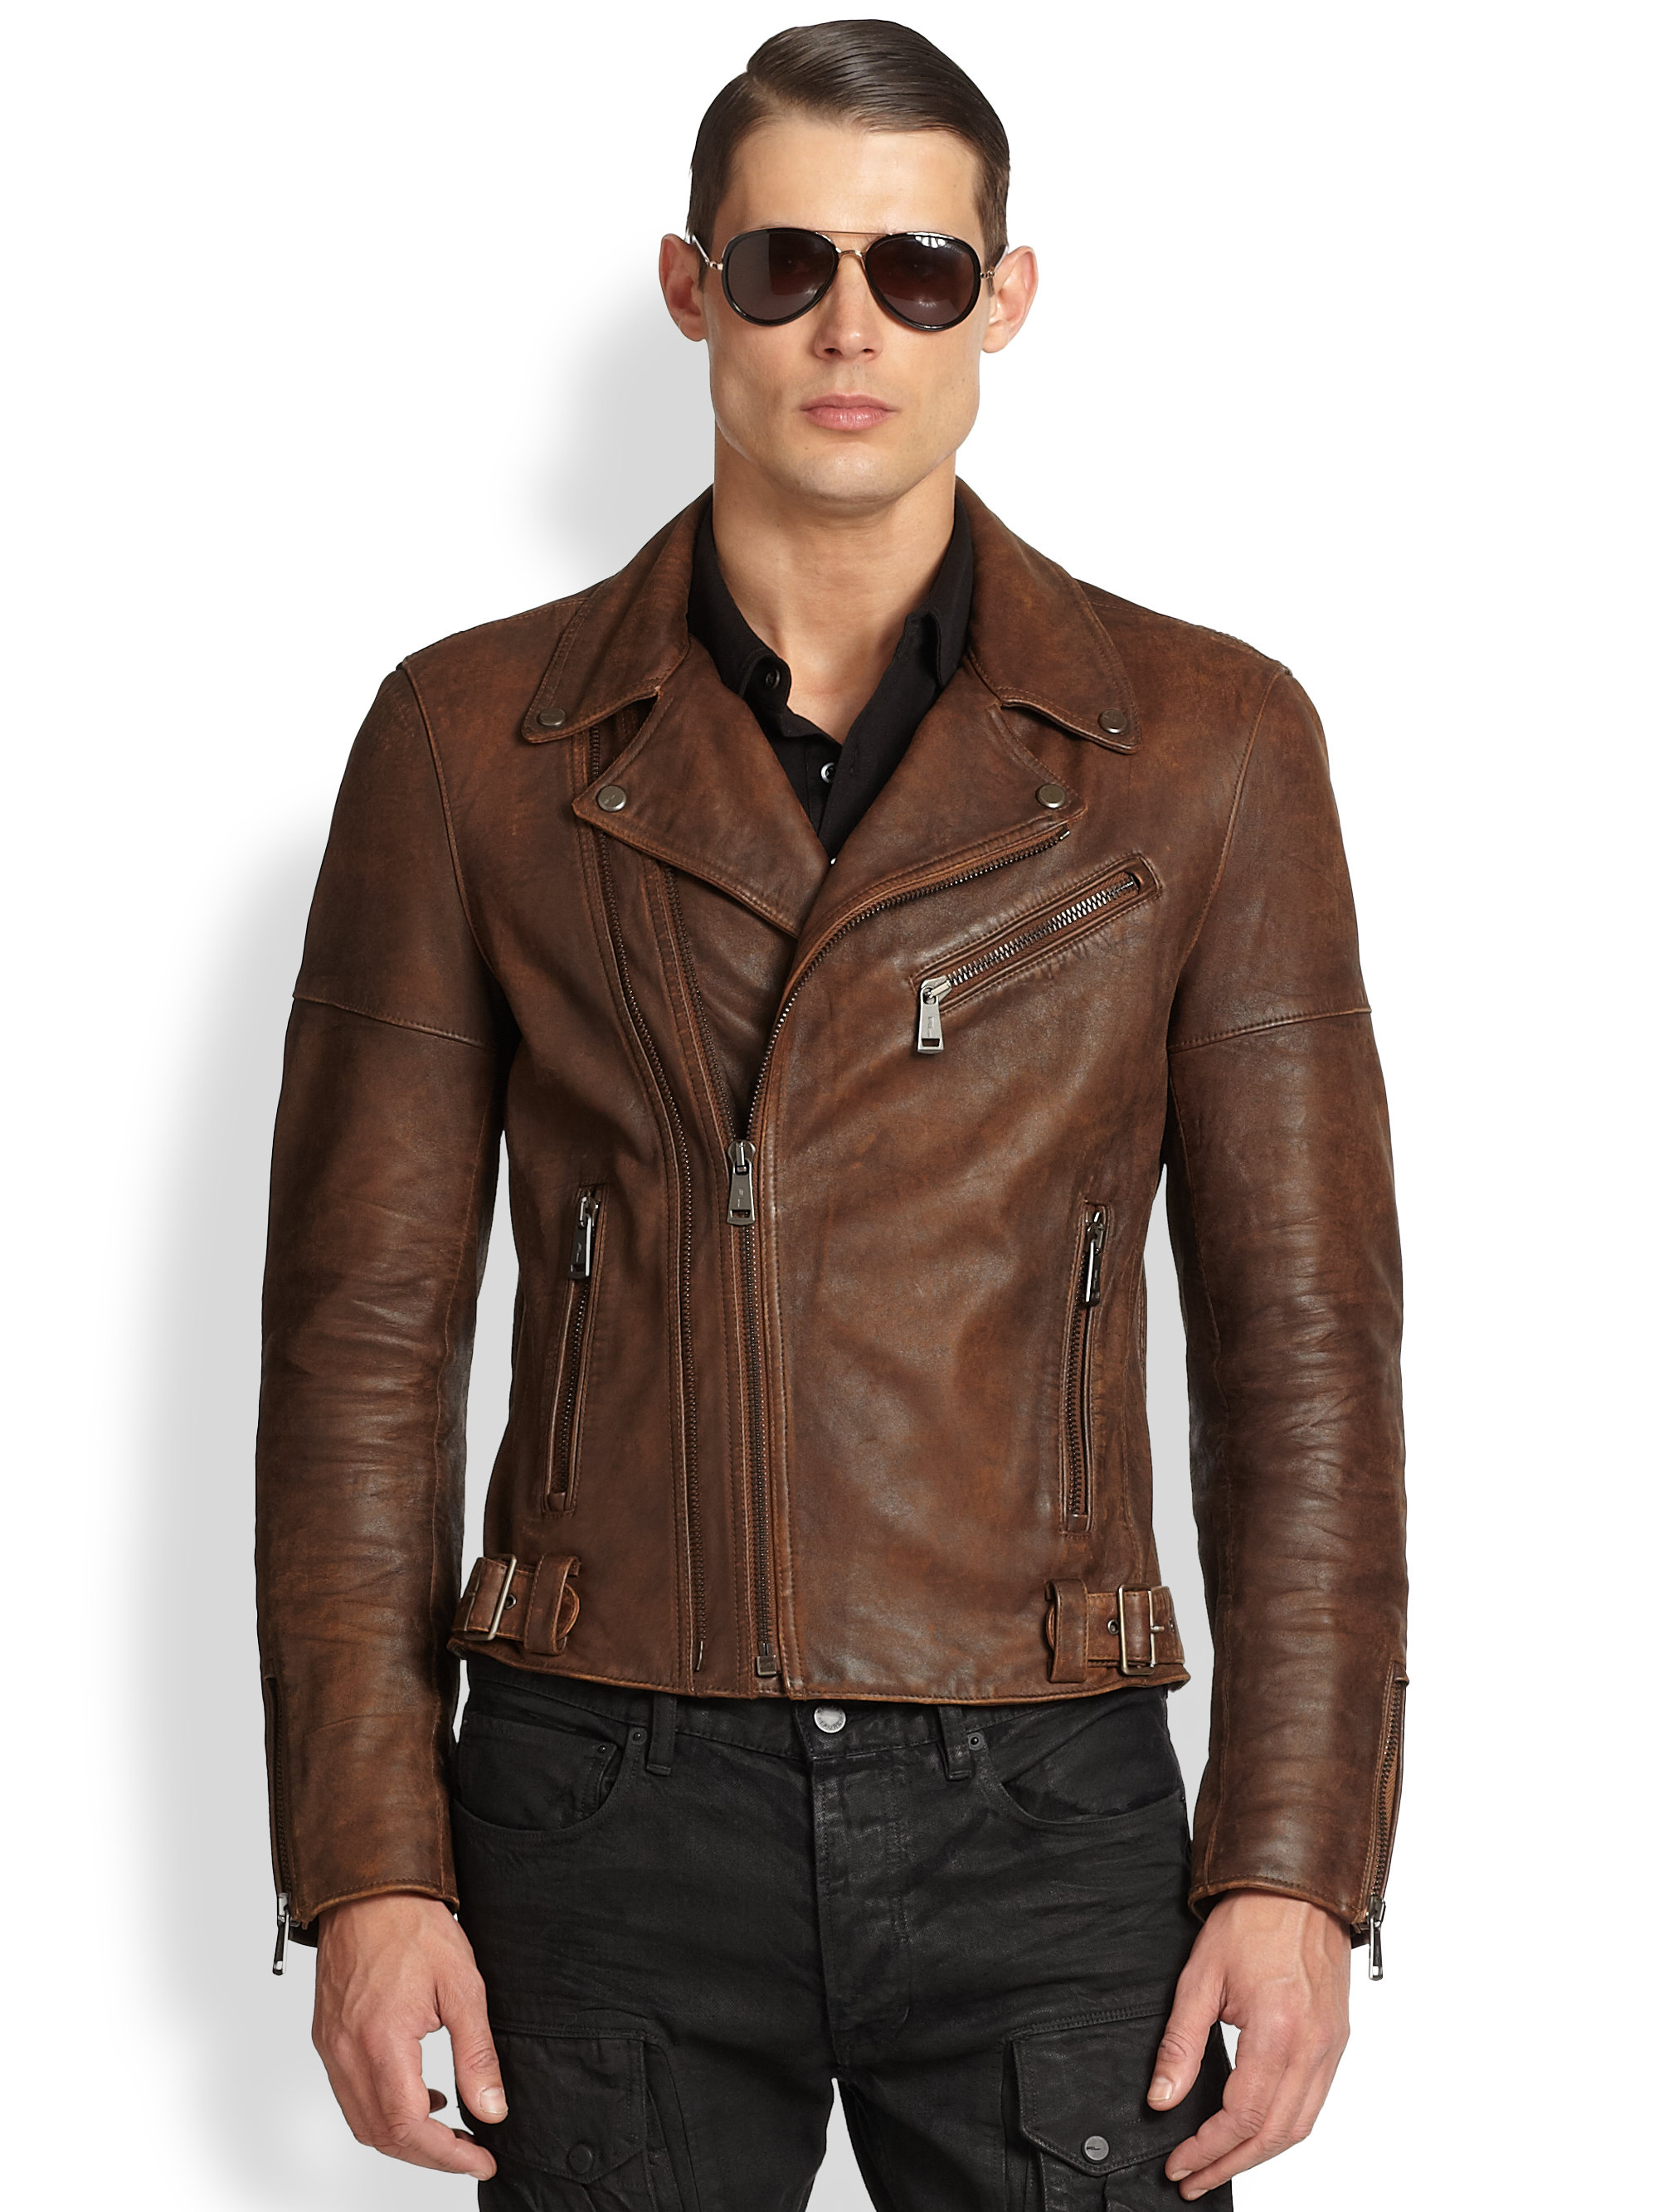 Ralph lauren black label Thunderbolt Leather Biker Jacket in Brown ...